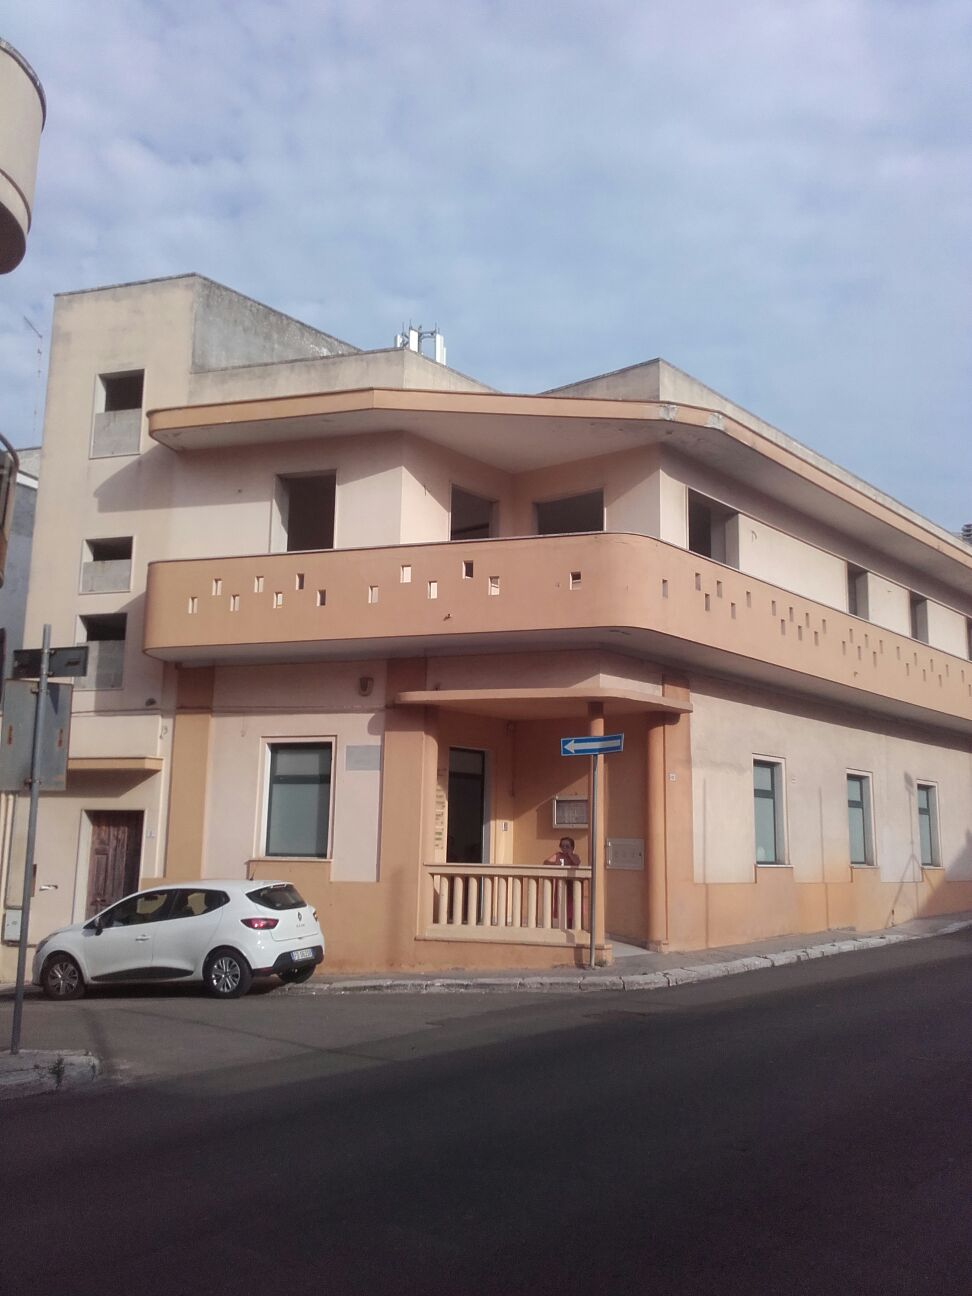 Property For Sale in Casarano Italy